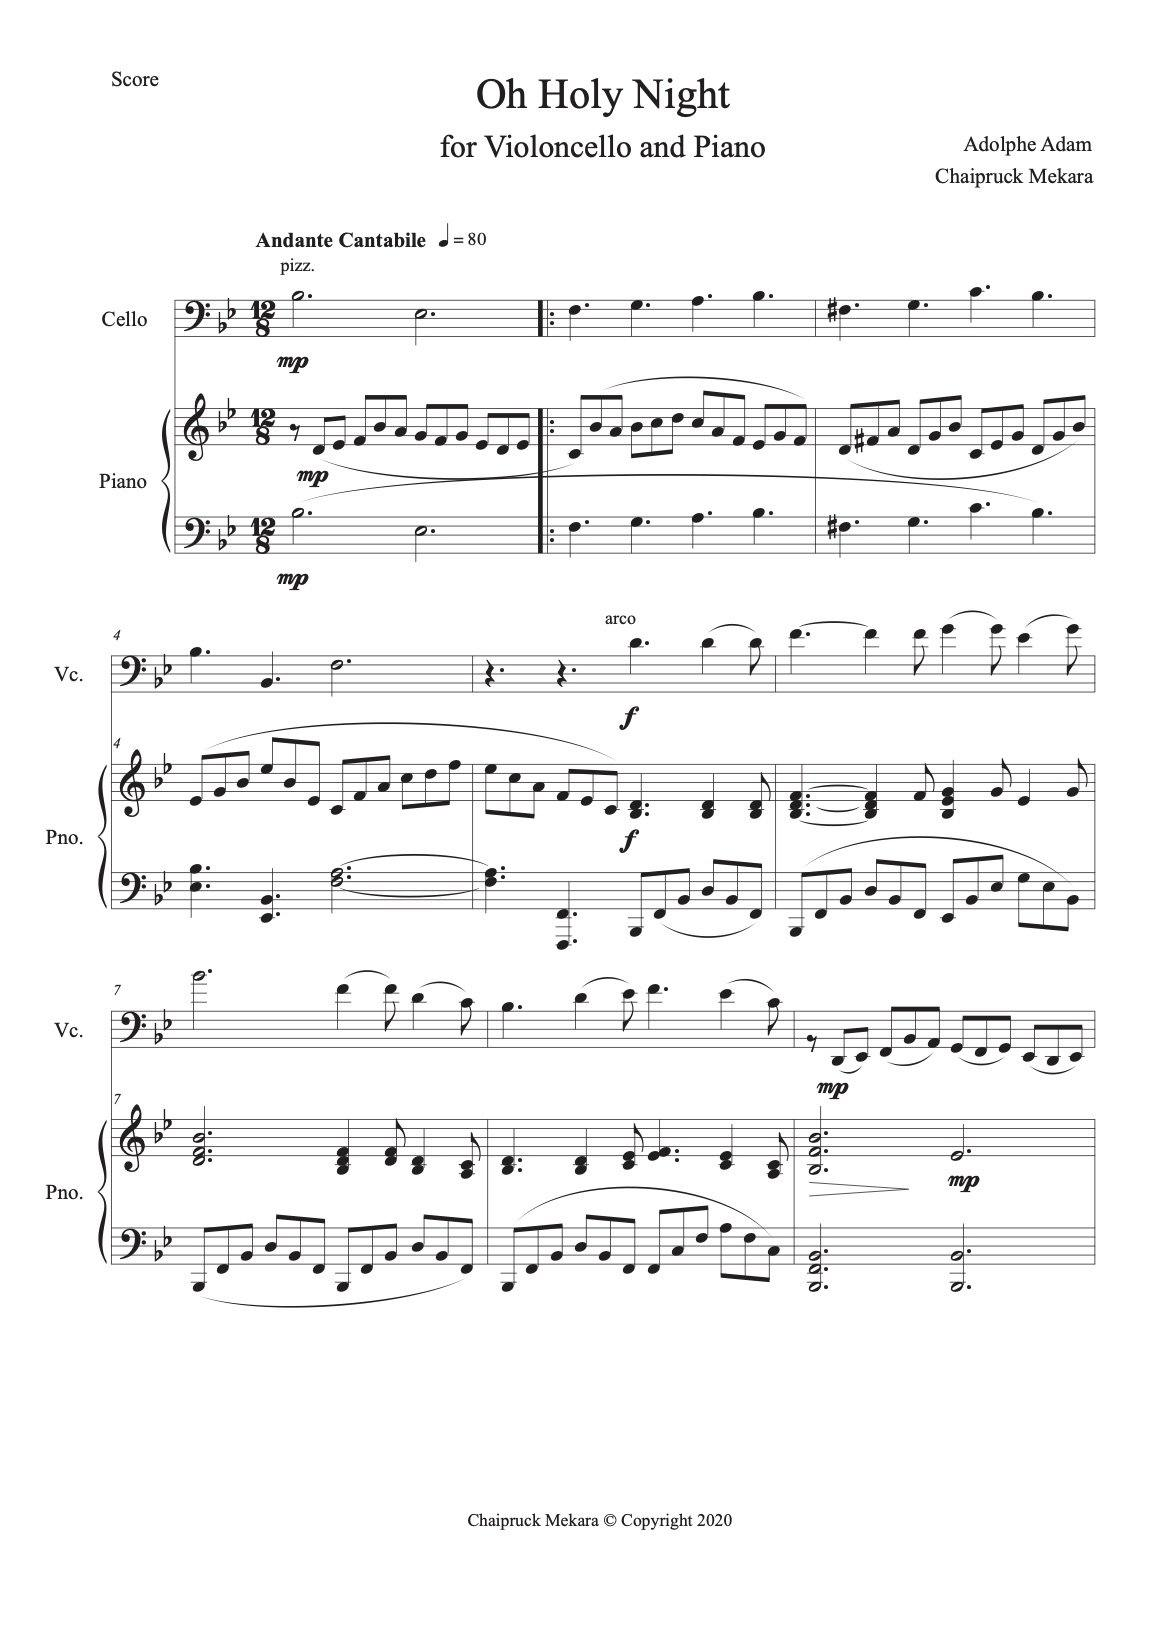 Oh Holy Night for Violoncello and Piano (score+part) - ChaipruckMekara